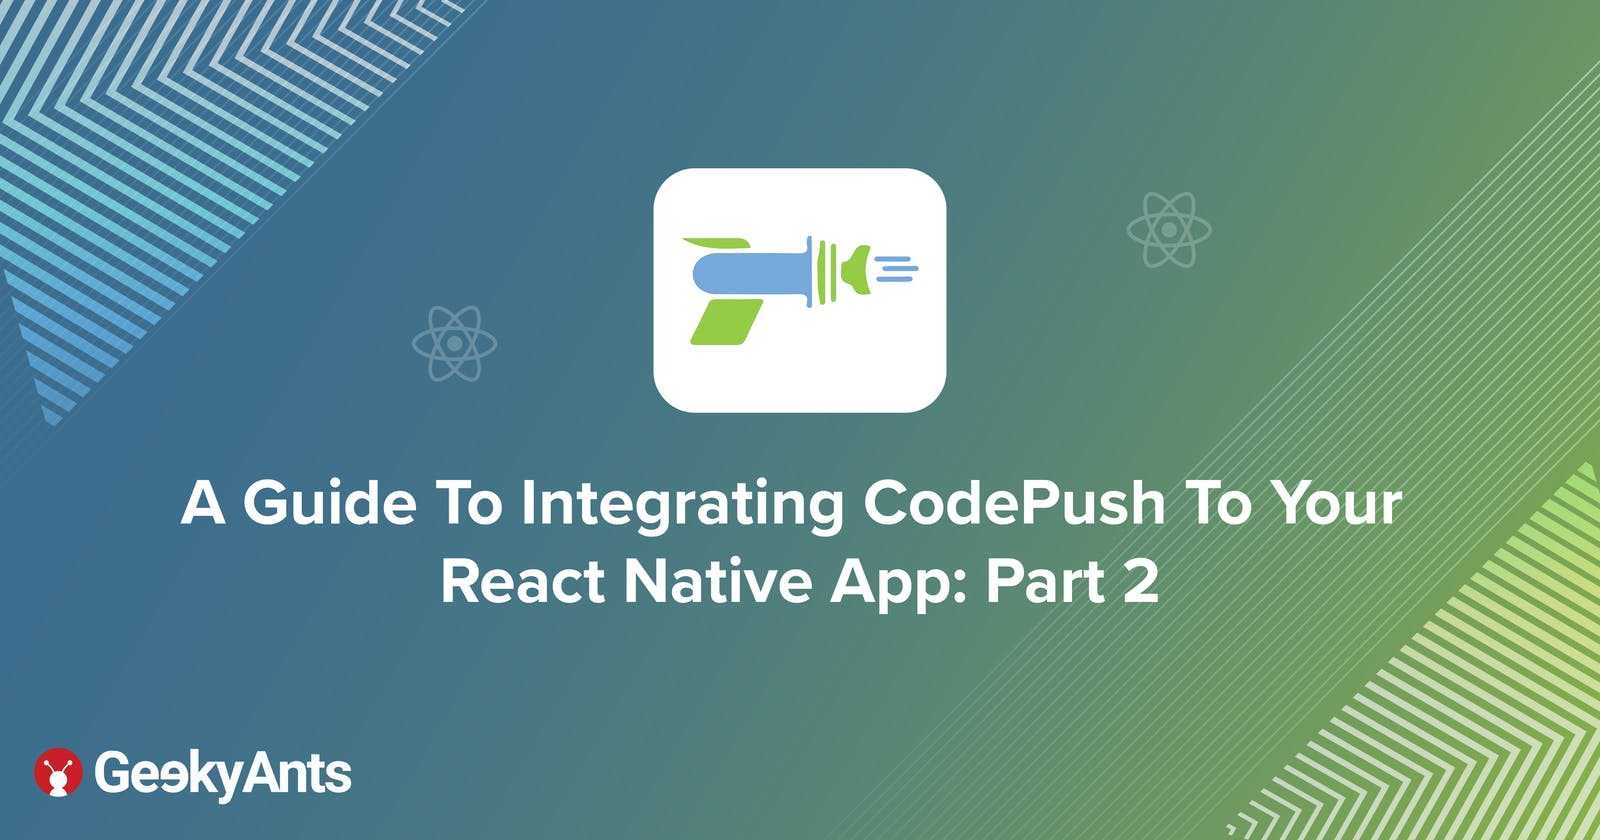 A Guide To Integrating CodePush To Your React Native App: Part 2